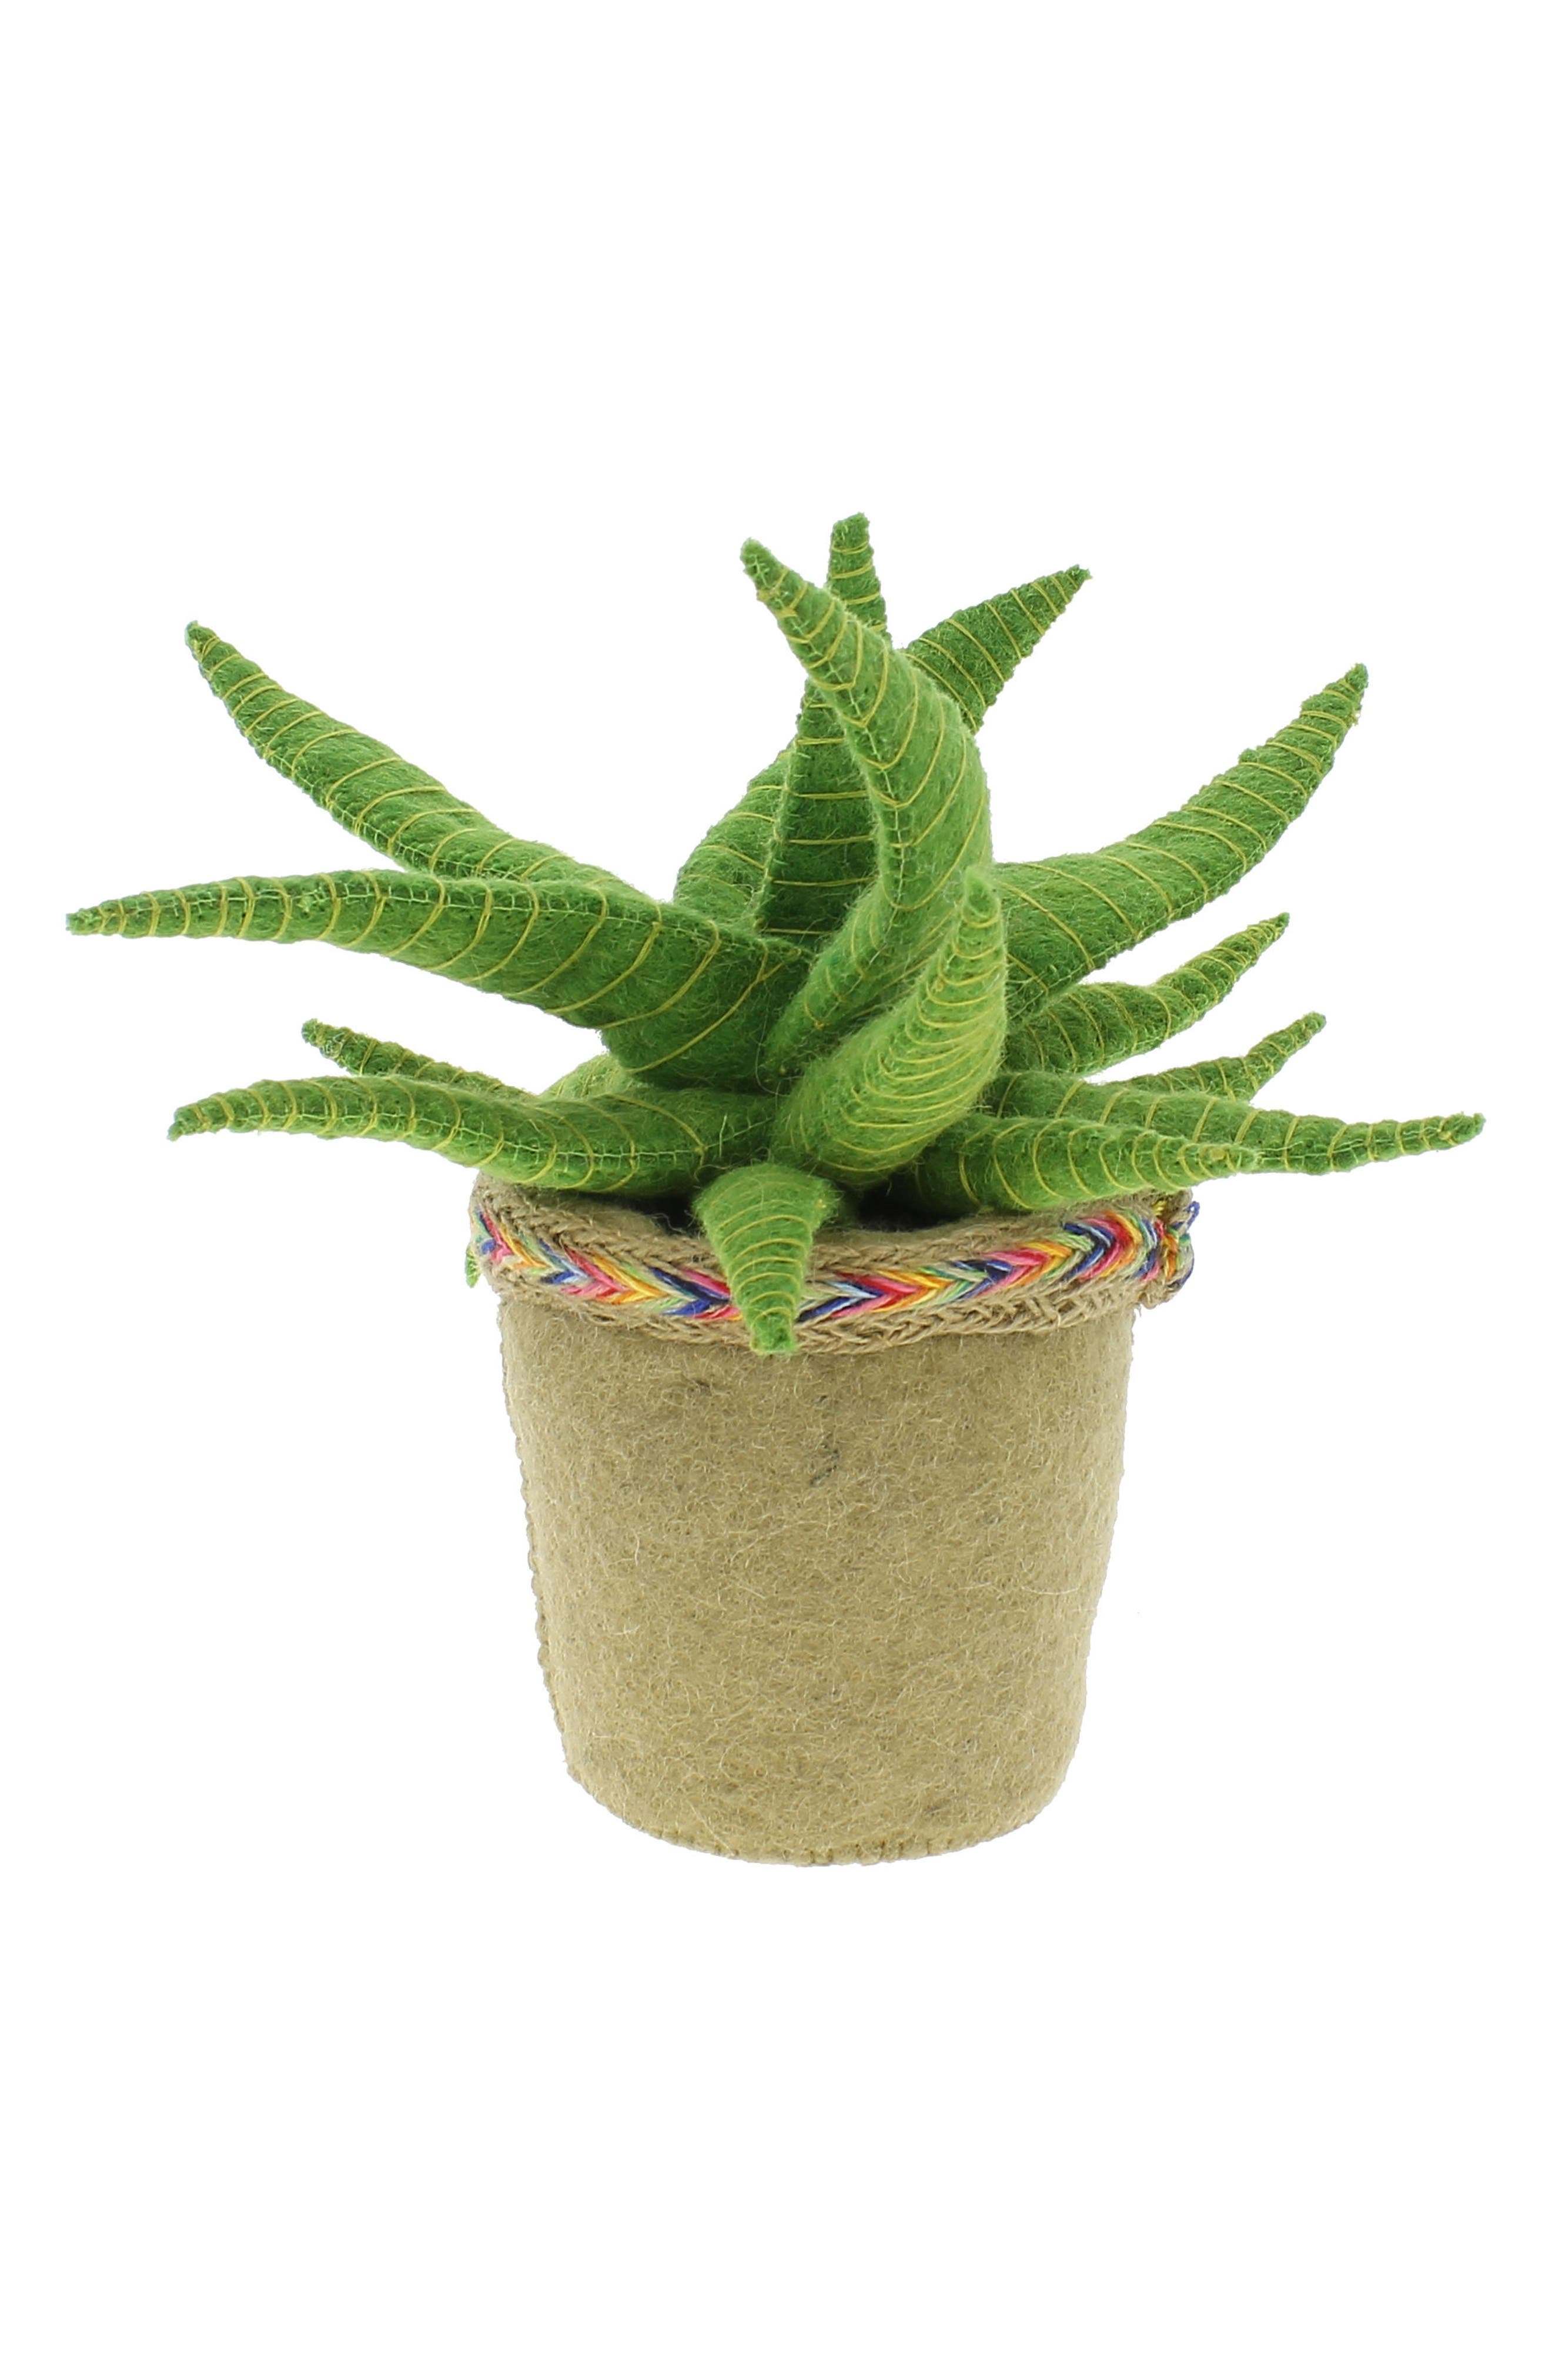 Main Image - Fiona Walker Stuffed Aloe Vera Cactus Weighted Bookend